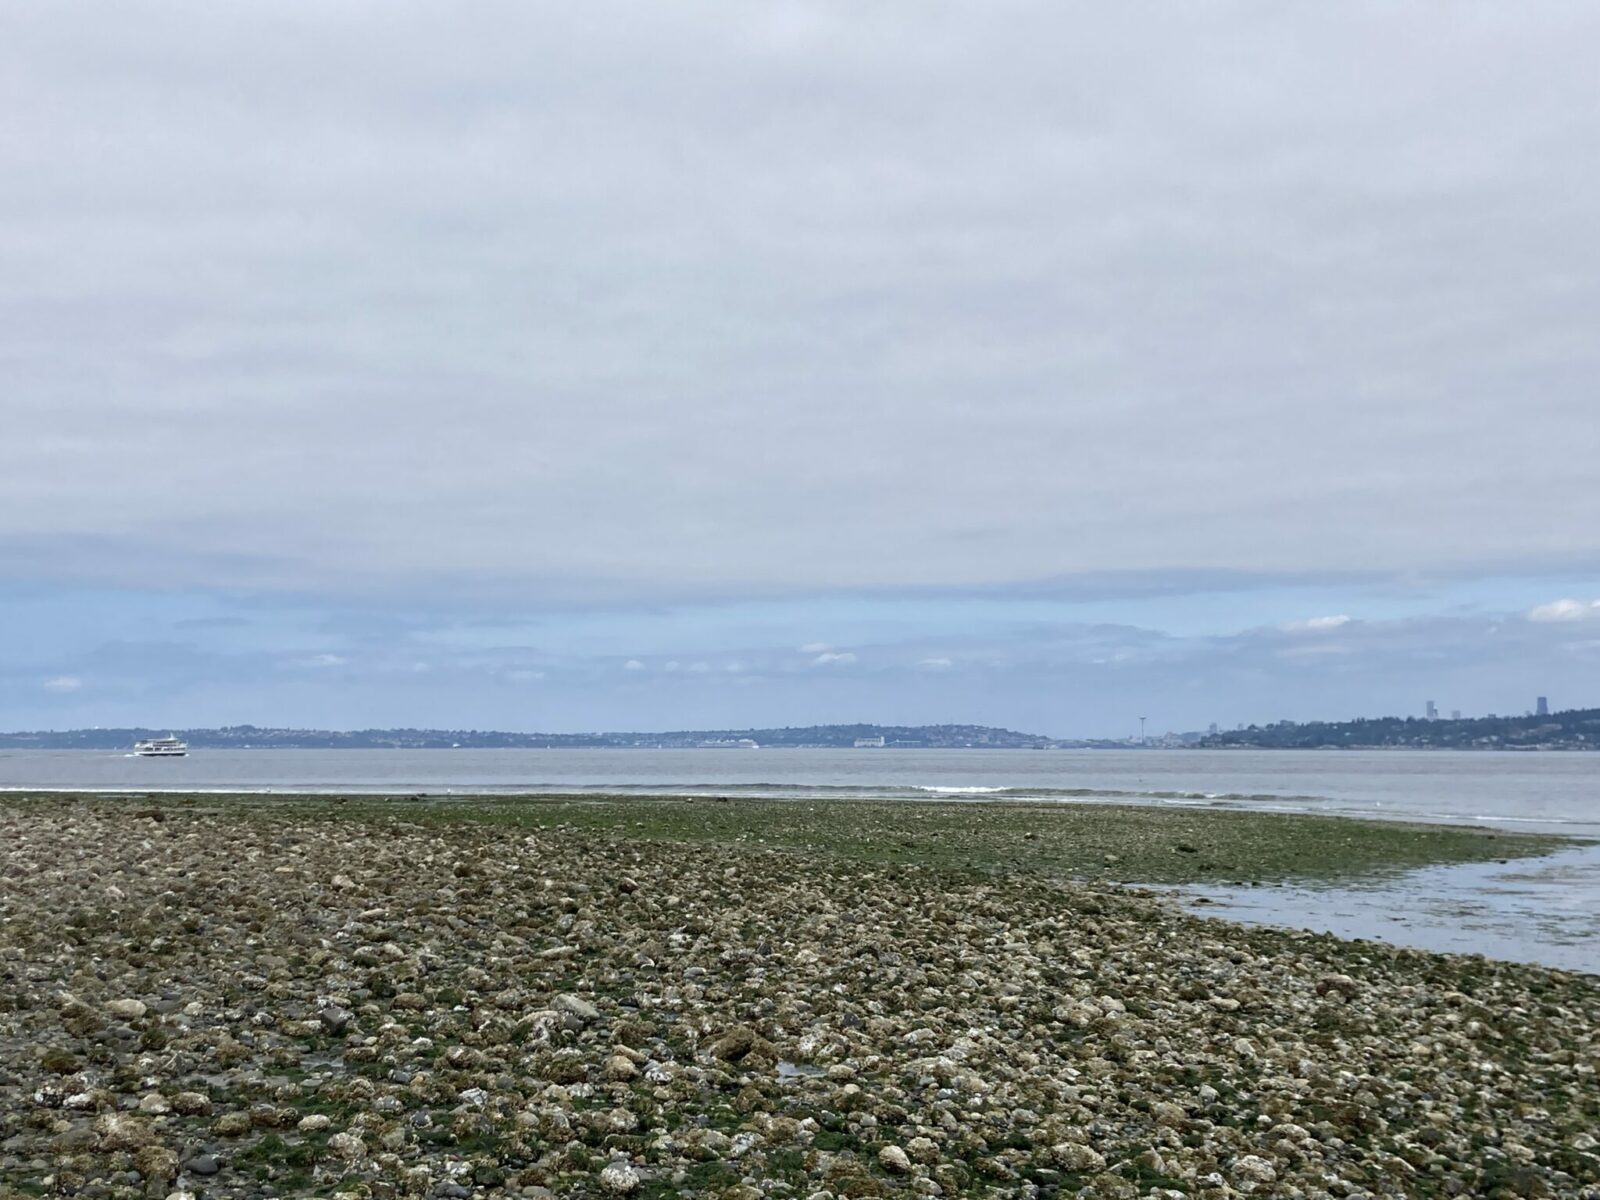 Rocky beach at low tide in Blake Island State park. A boat is sailing away from the island towards downtown Seattle in the distance.